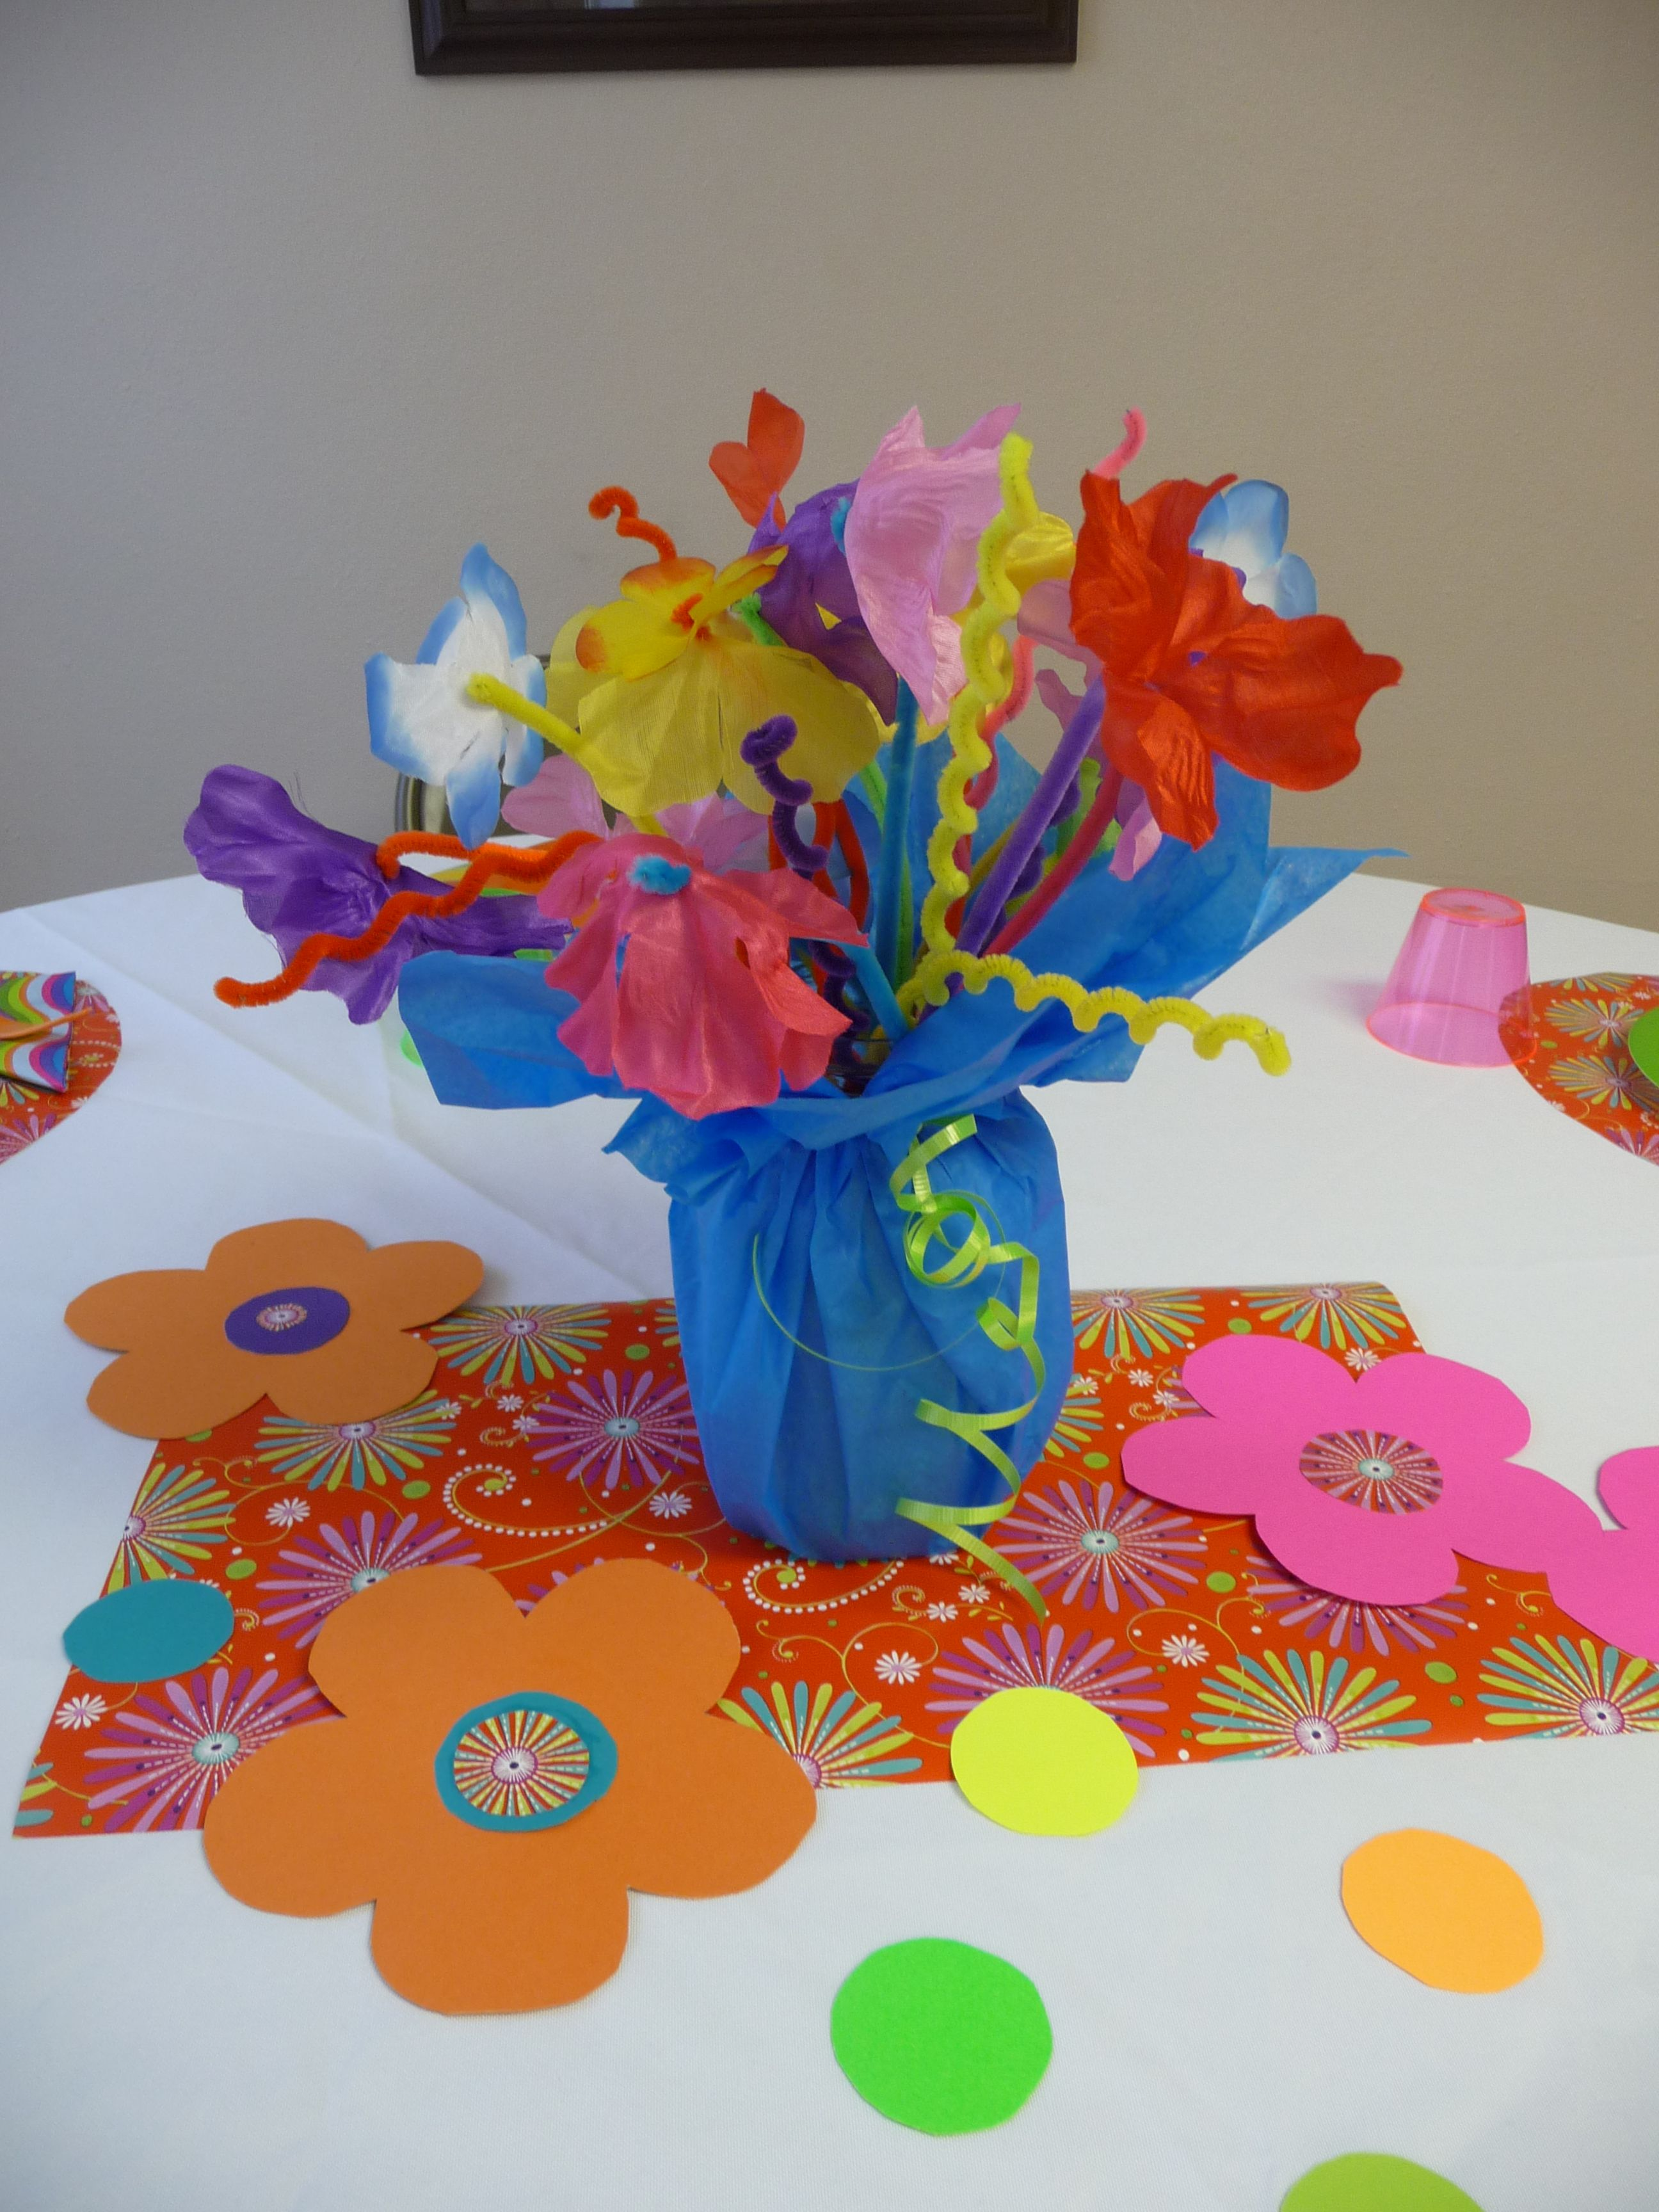 Pin By Joyful Abundant Life On Holidays And Special Occassions Kids Party Centerpieces Fun Kids Party Activity Day Girls